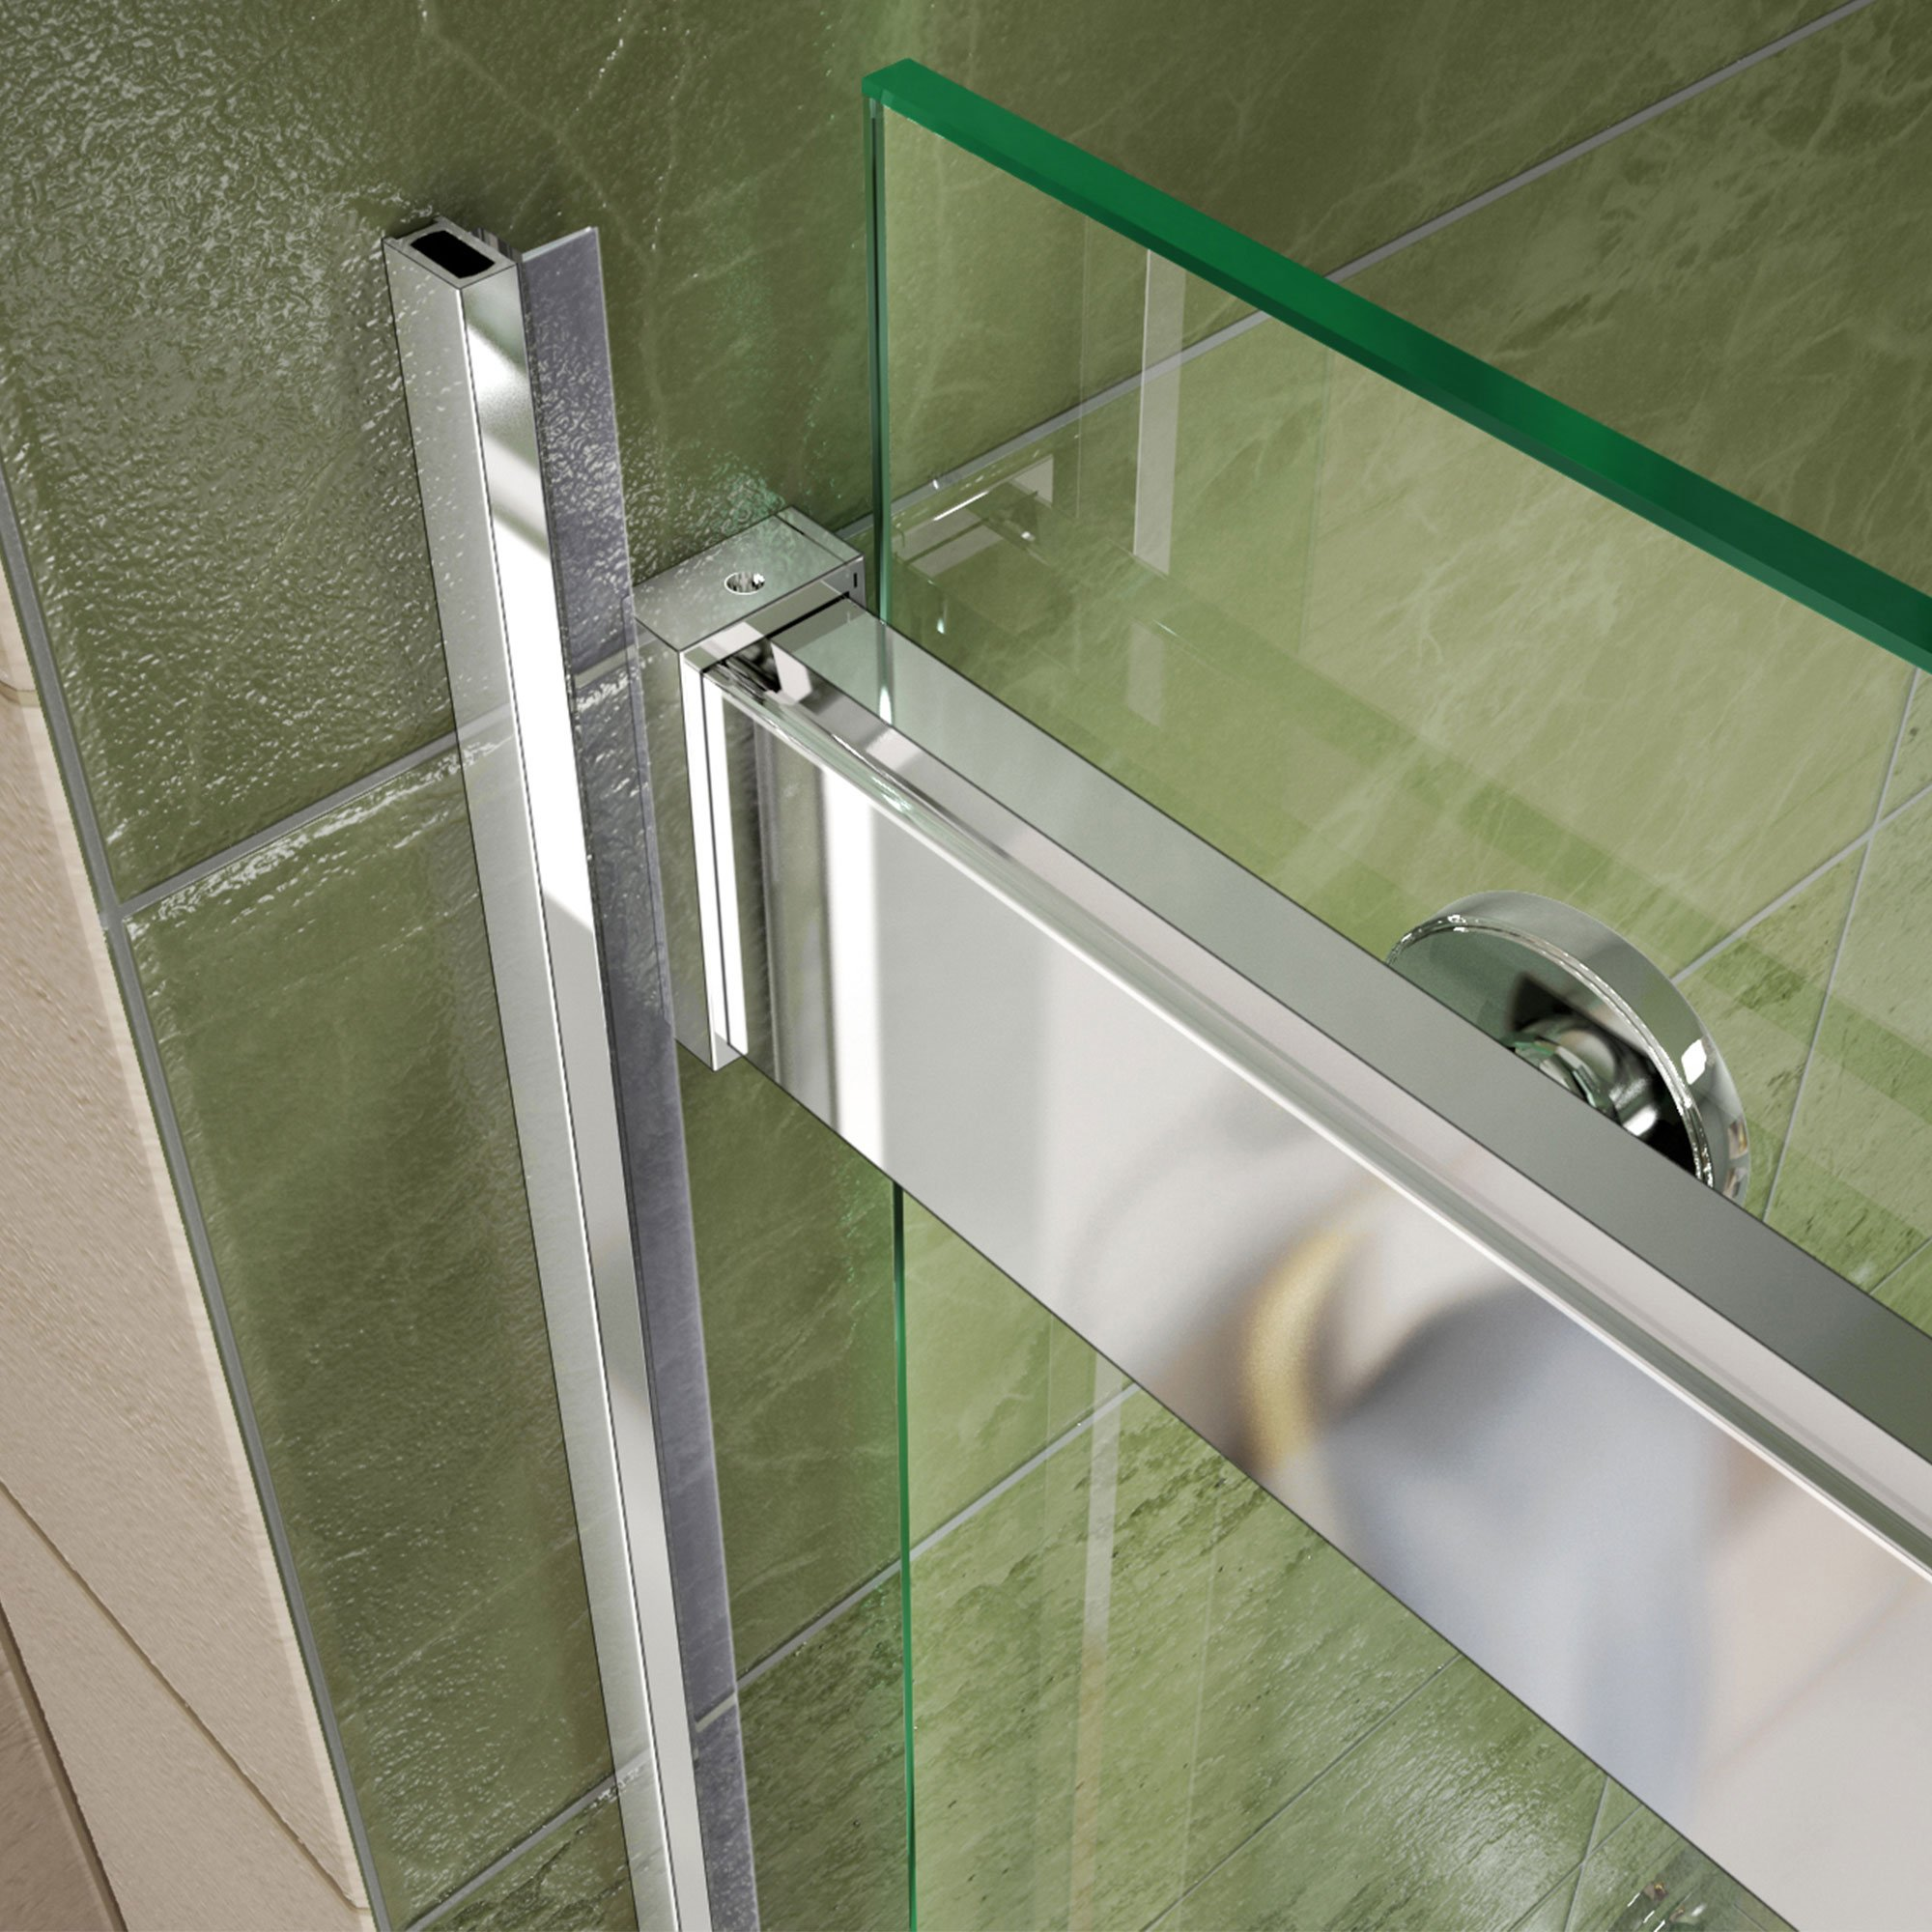 DreamLine SHDR-6360760-04  Essence 56 to 60 in. Frameless Bypass Shower Door in Brushed Nickel Finish by DreamLine (Image #4)